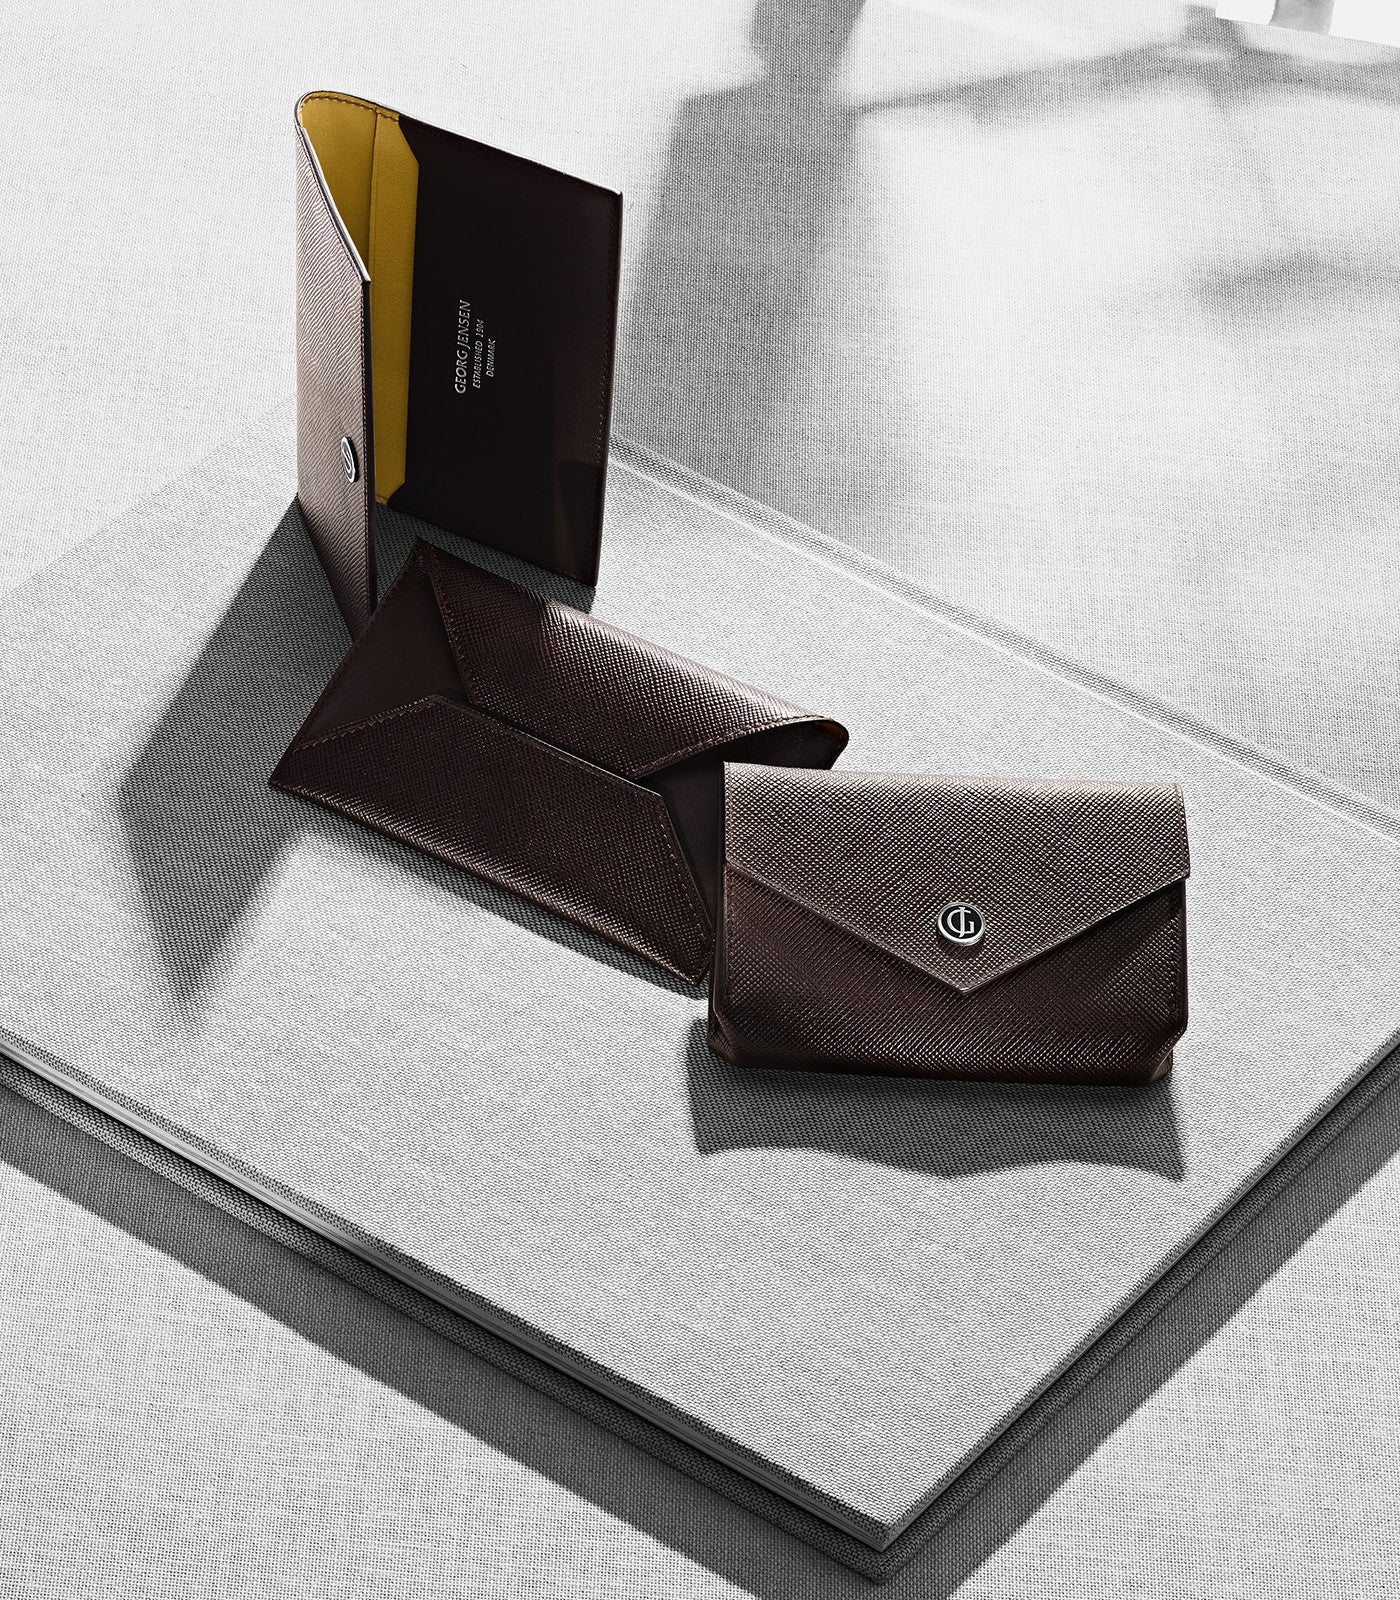 collections/Desktop_Accessories_KeyVisual_GJ_FW14_SLG_STILL-LIFE_SAFFIANO-BROWN-01_RGB_72PPI.jpg